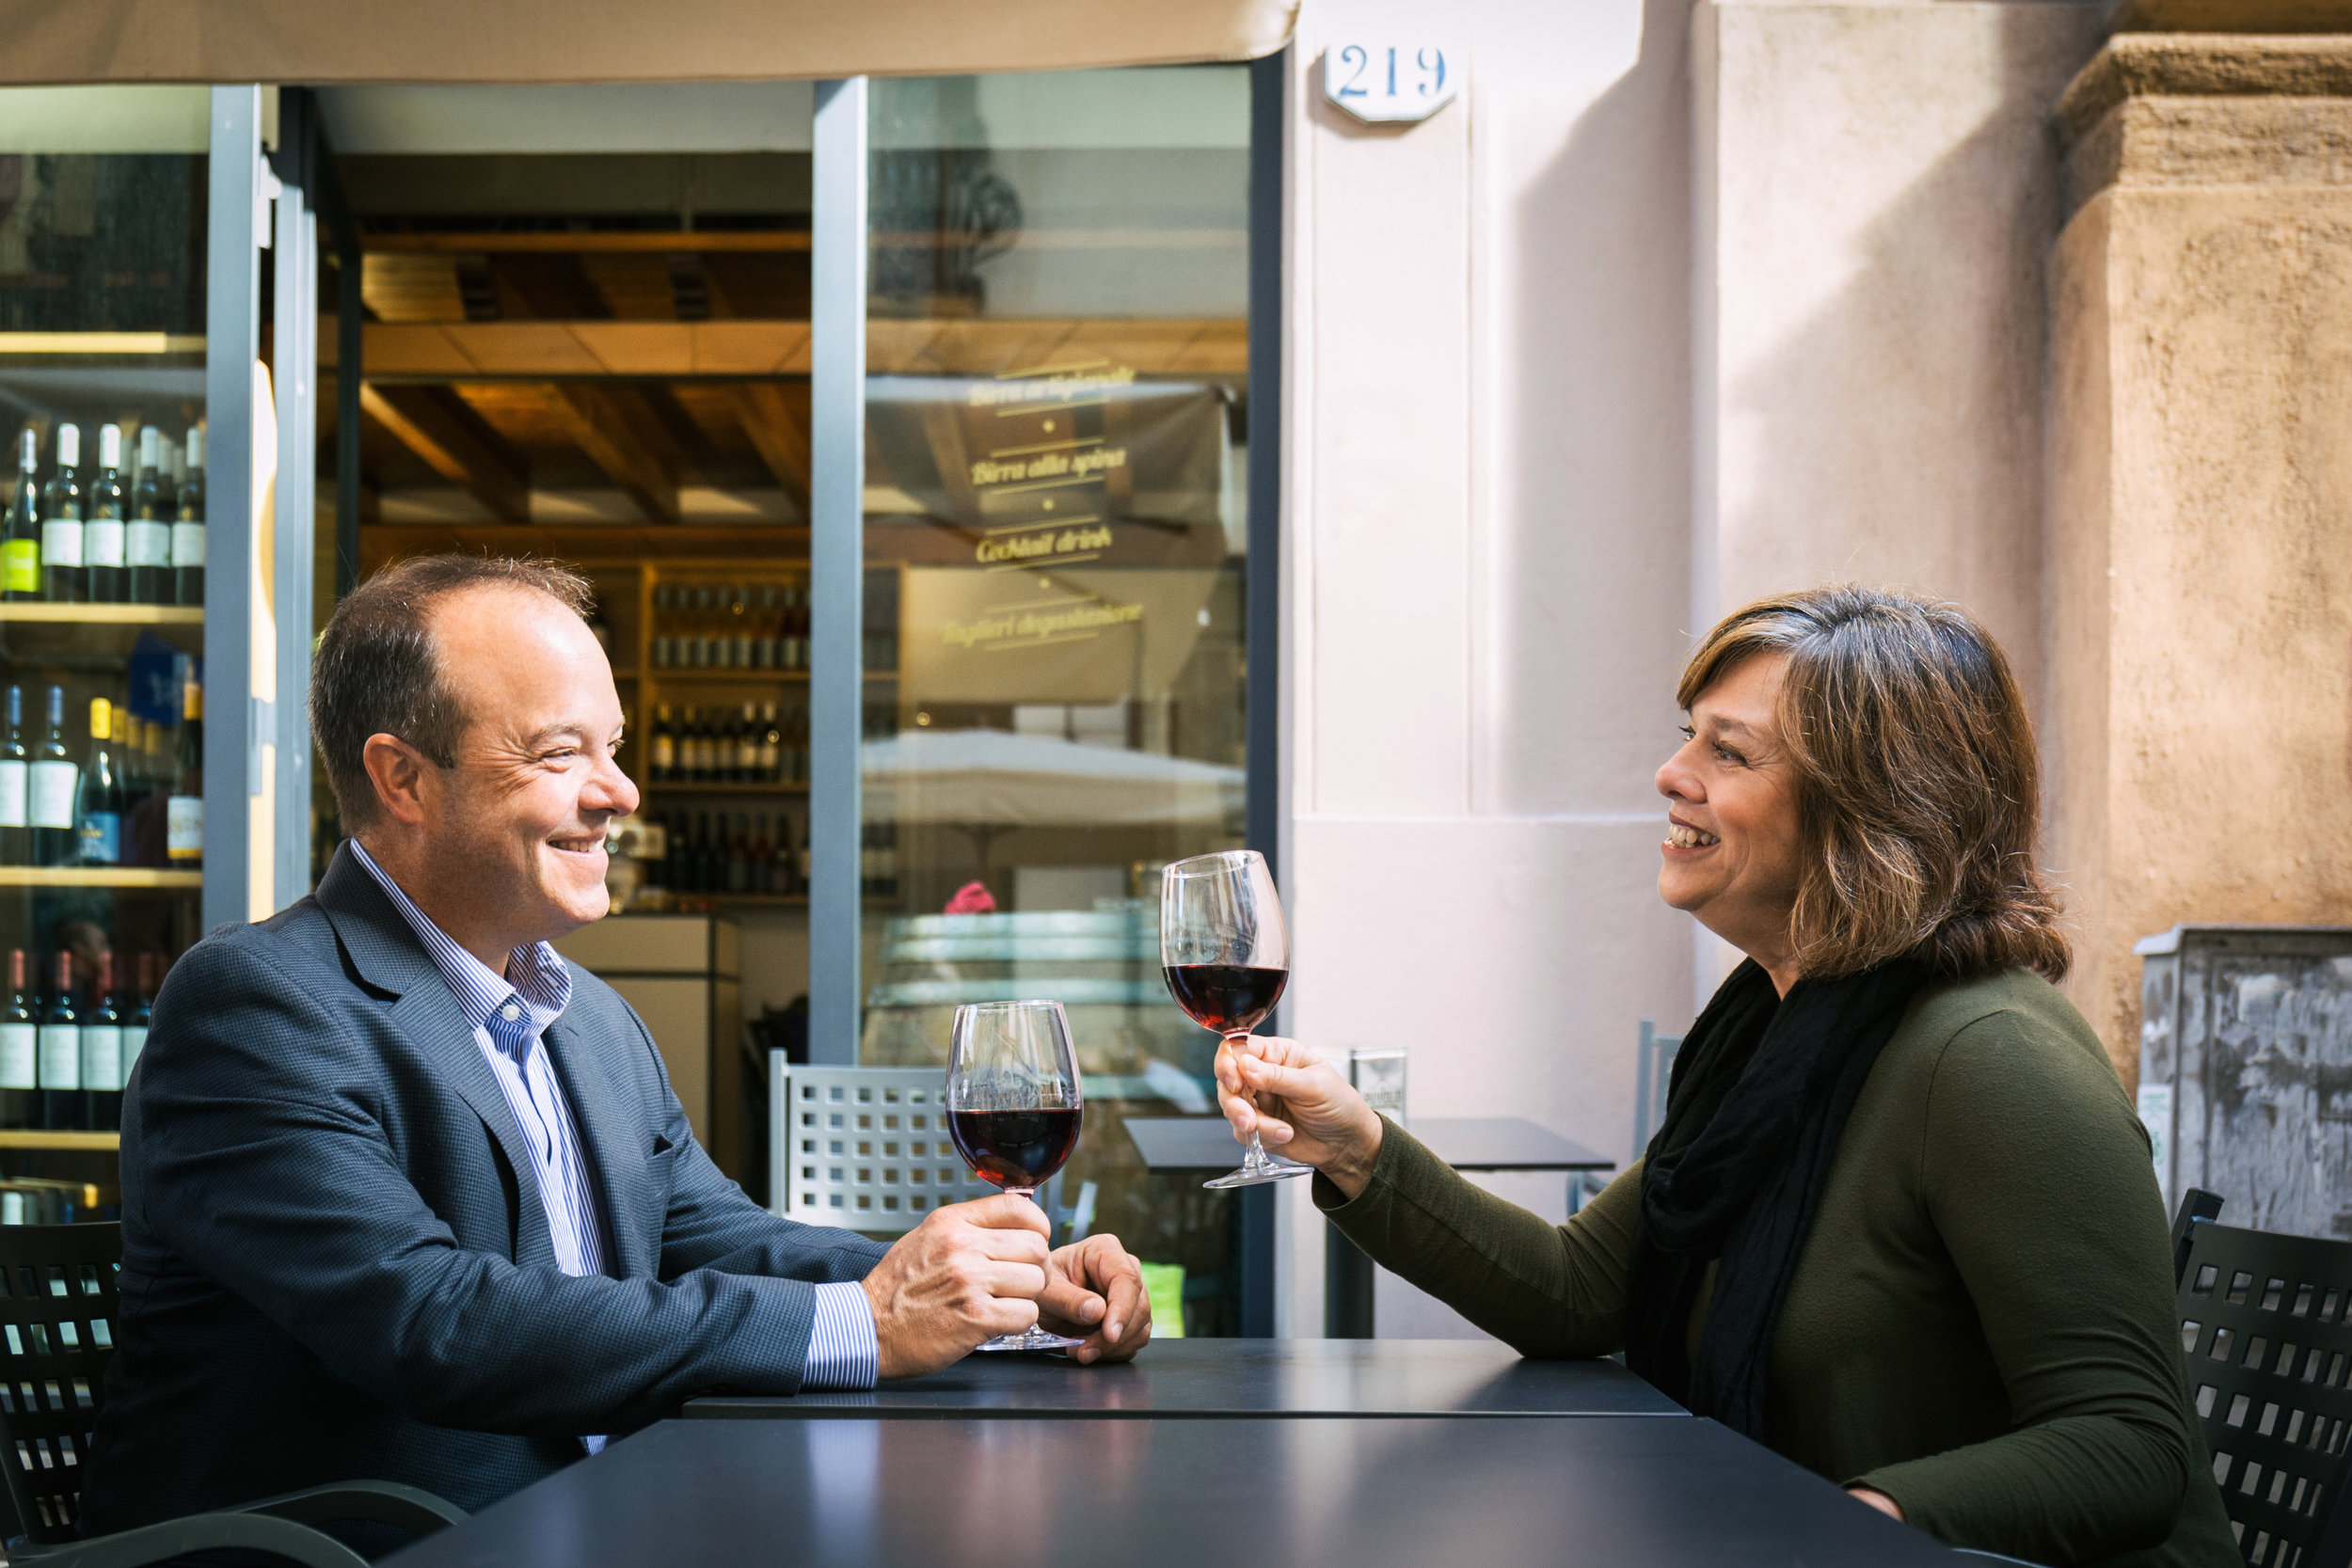 Toasting with a Sicilian wine in Palermo, Italy - Photo by   Alberto Alicata